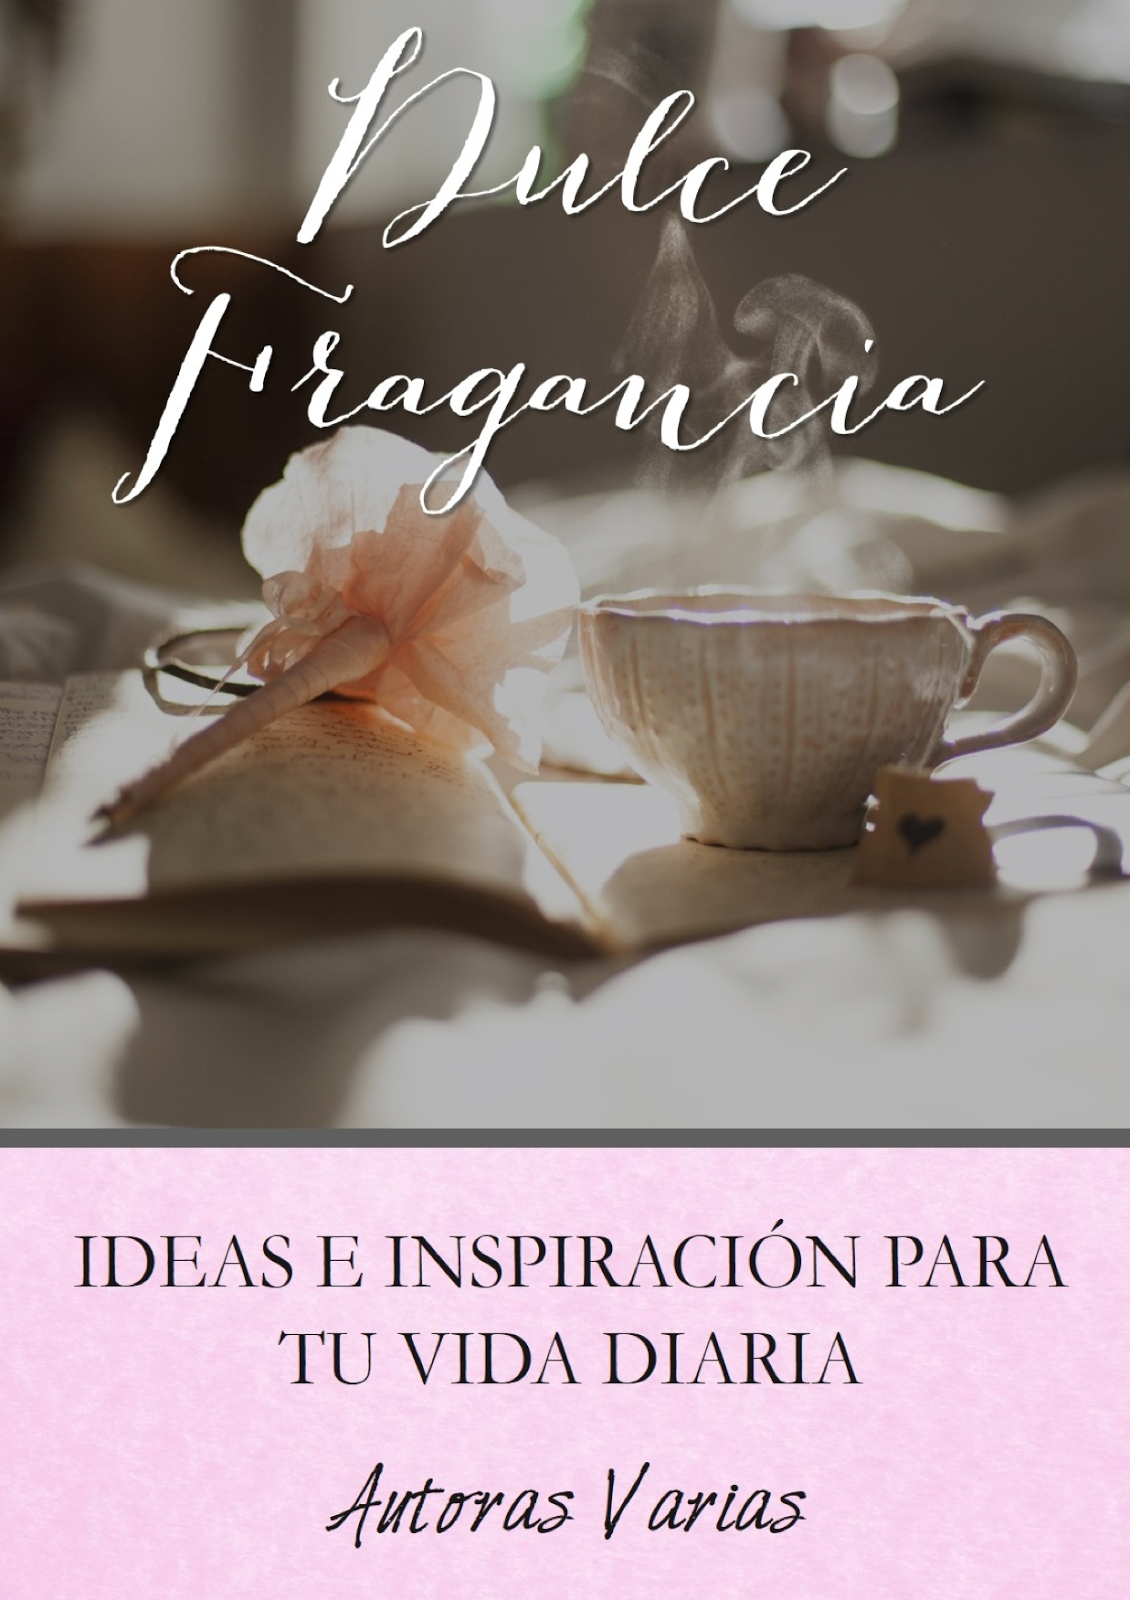 Descarga nuestro libro digital: